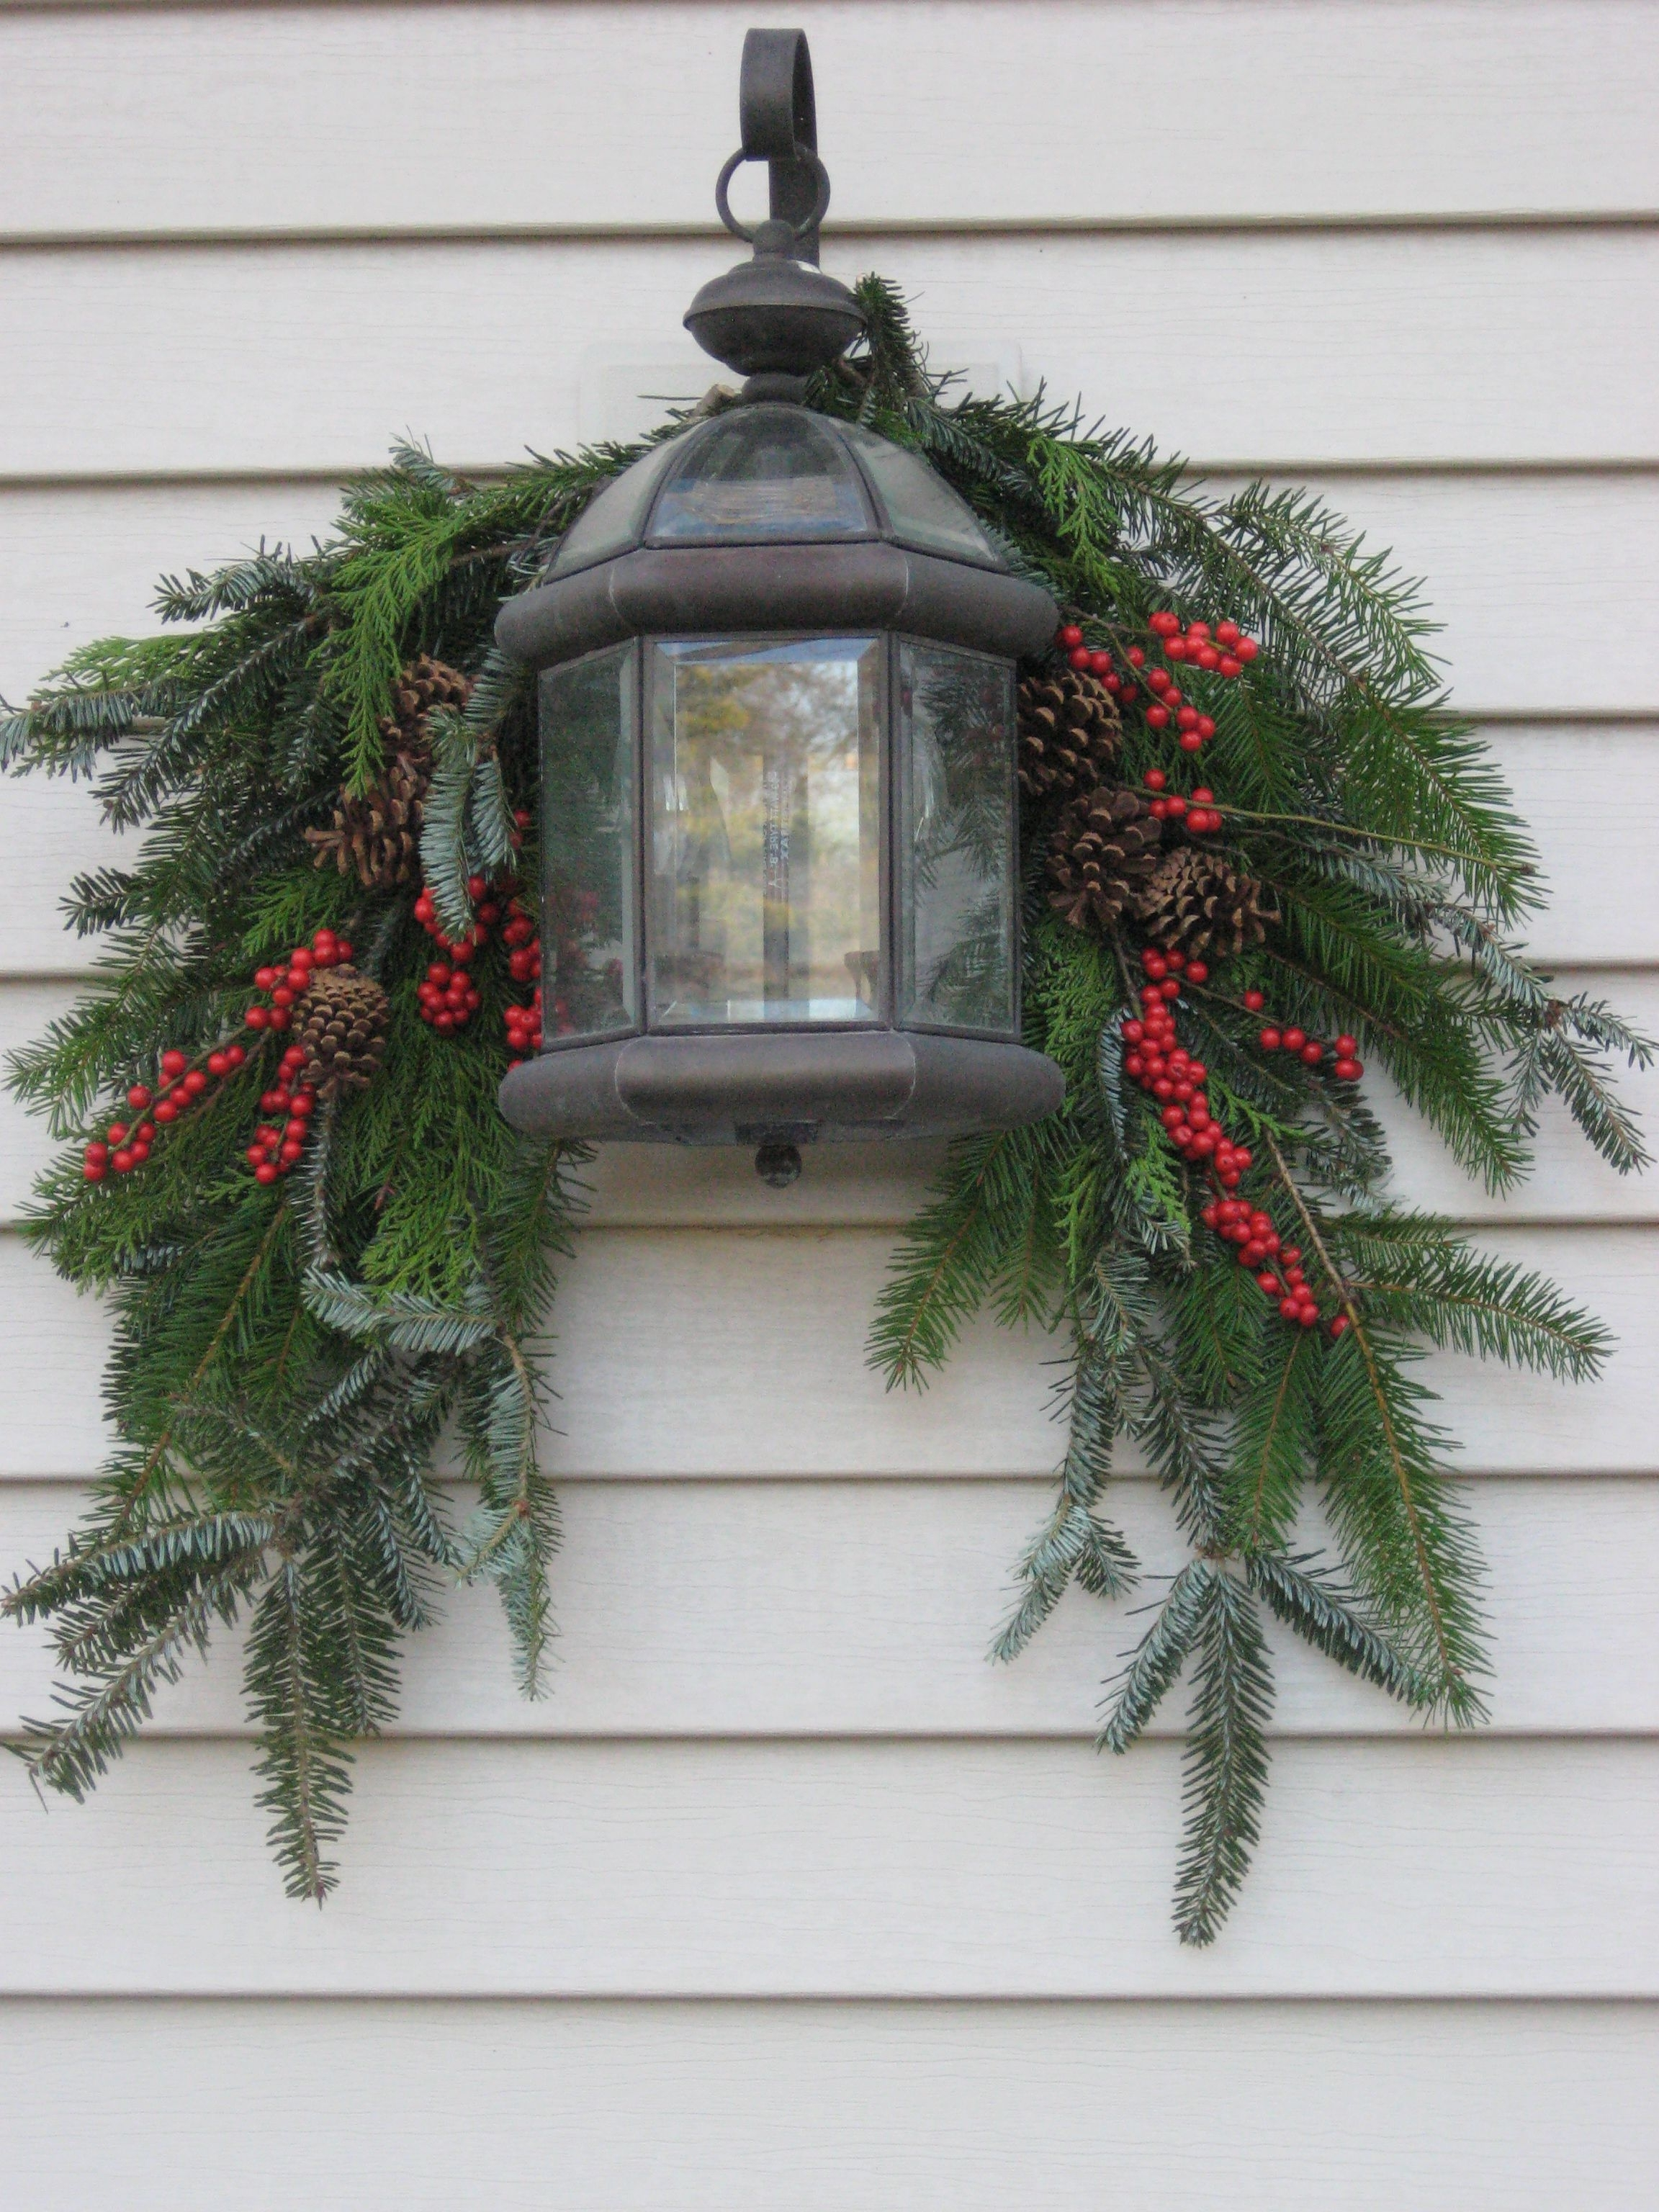 Trendy A Guide To Beautiful (And Not Tacky) Outdoor Holiday Decor In 2018 For Outdoor Xmas Lanterns (View 16 of 20)